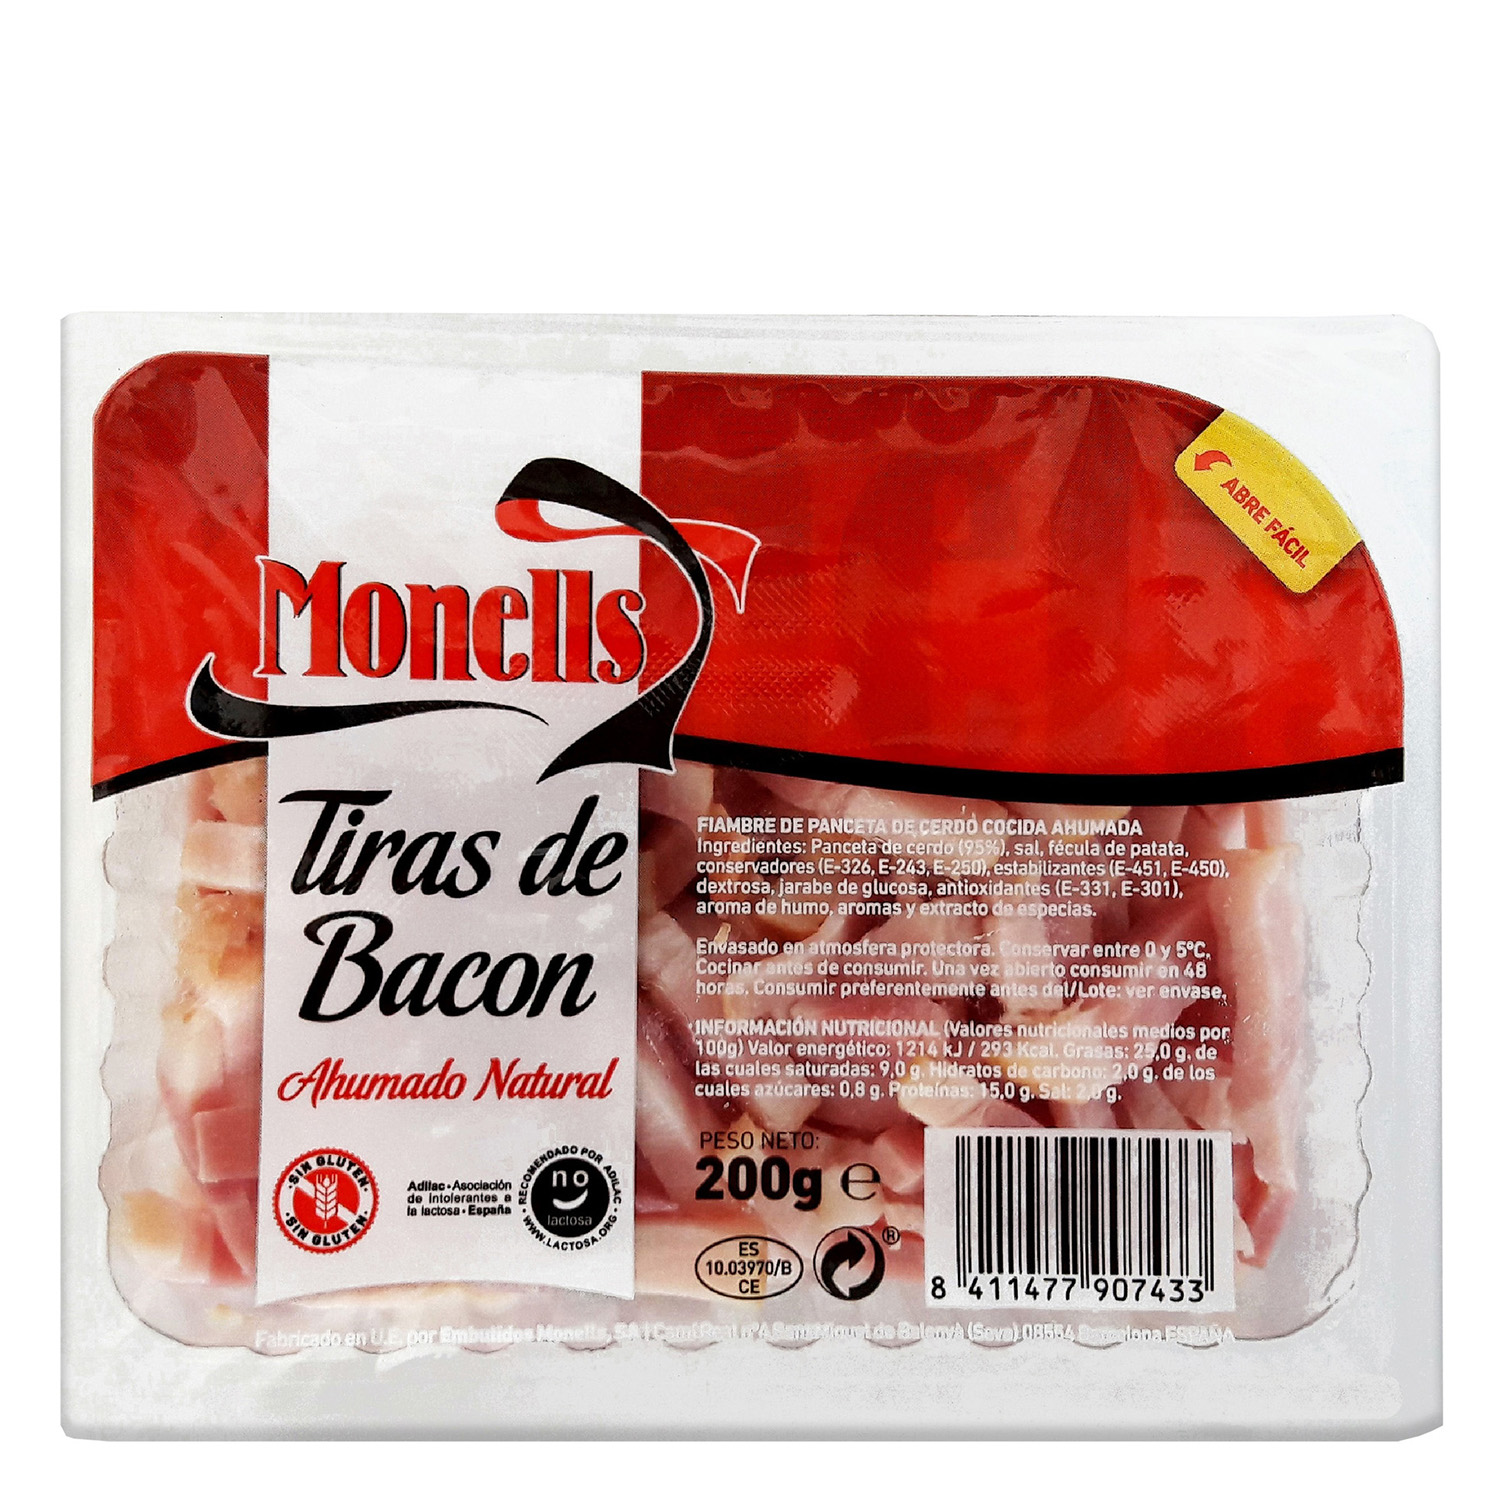 Tiras de bacon ahumado natural Monells 200 g.